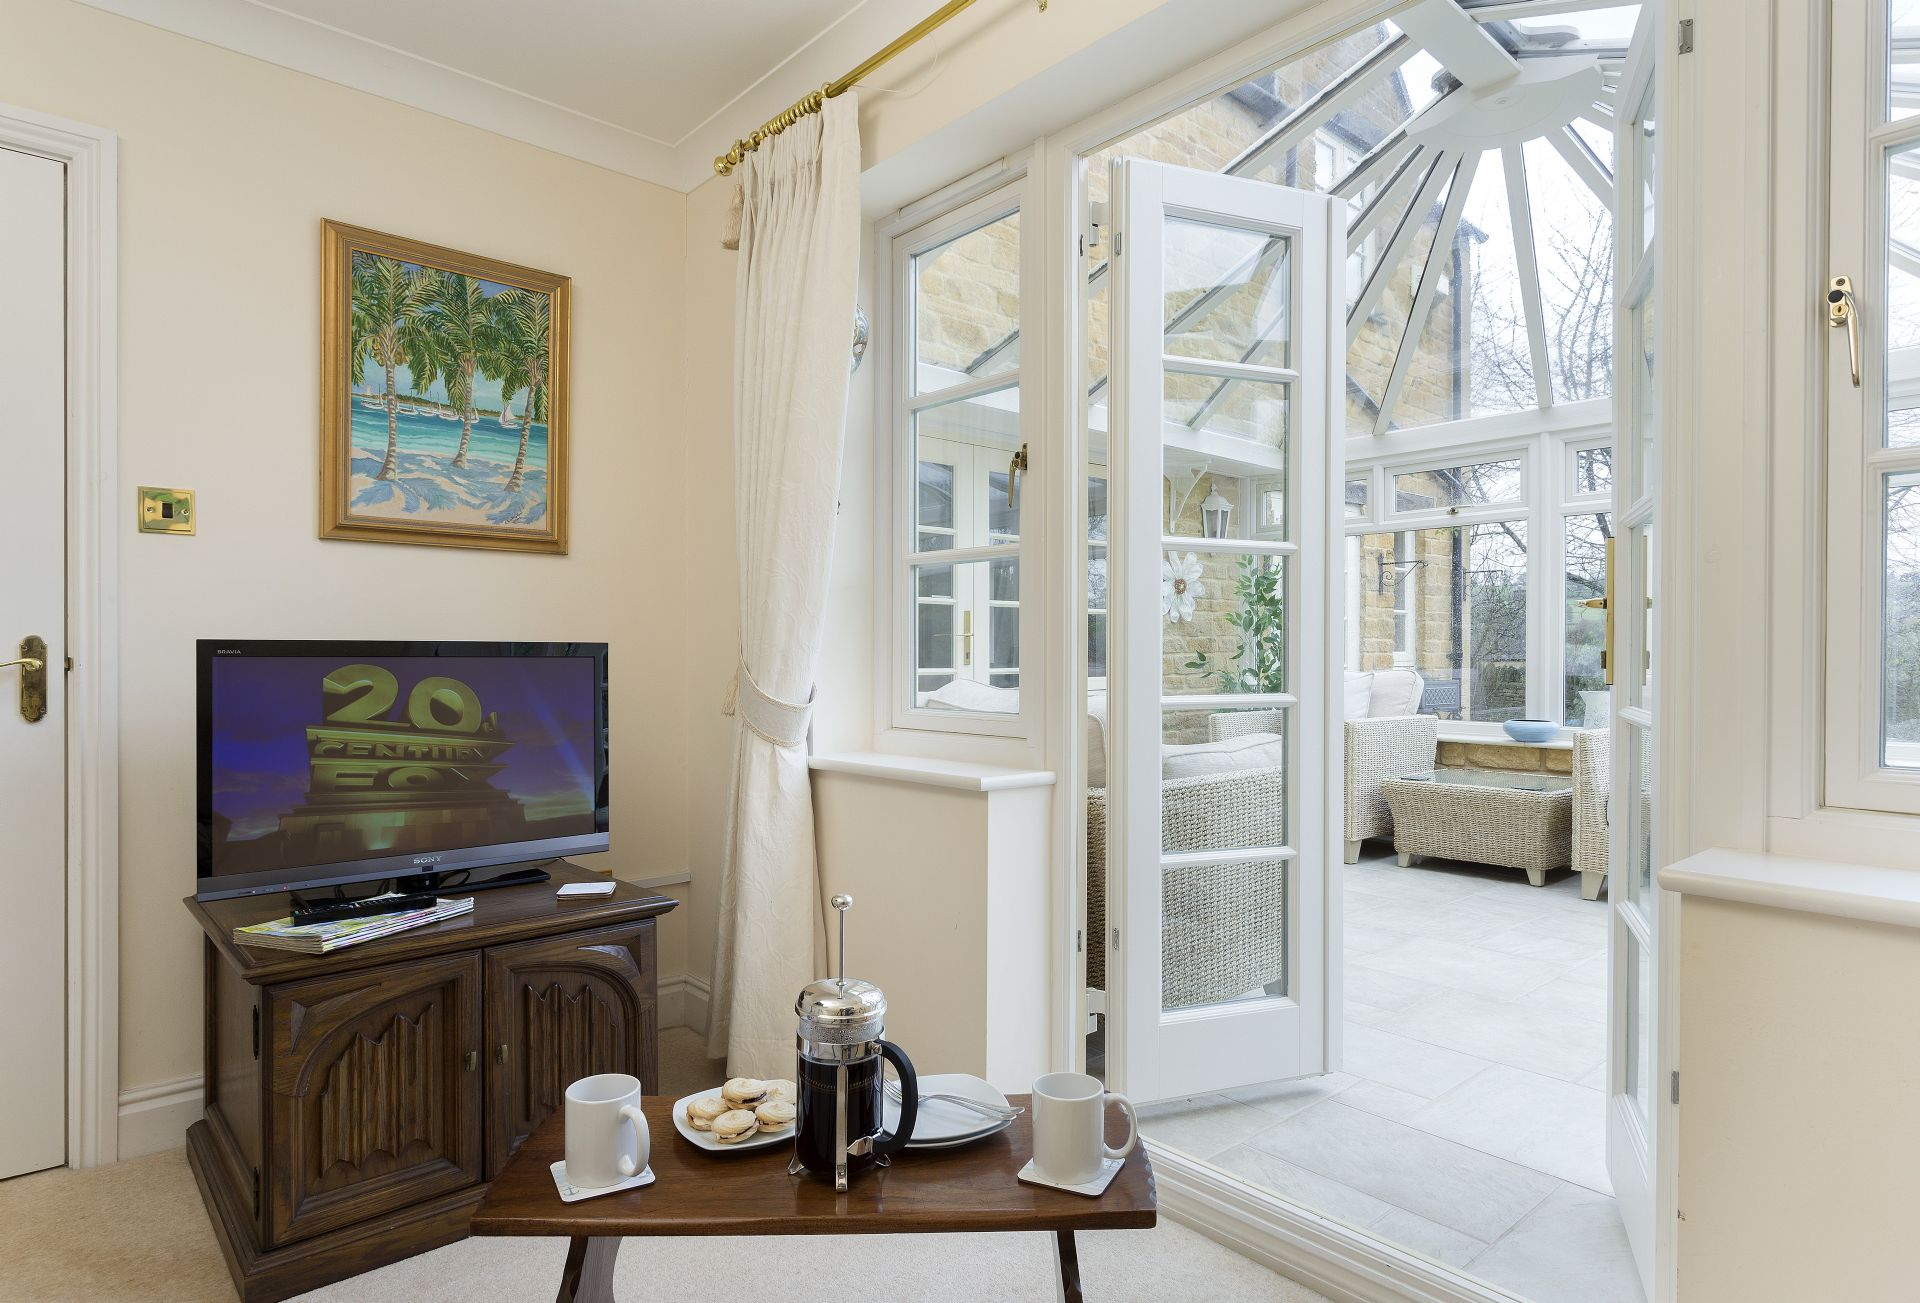 Ground floor: View leading from the dining room into the conservatory